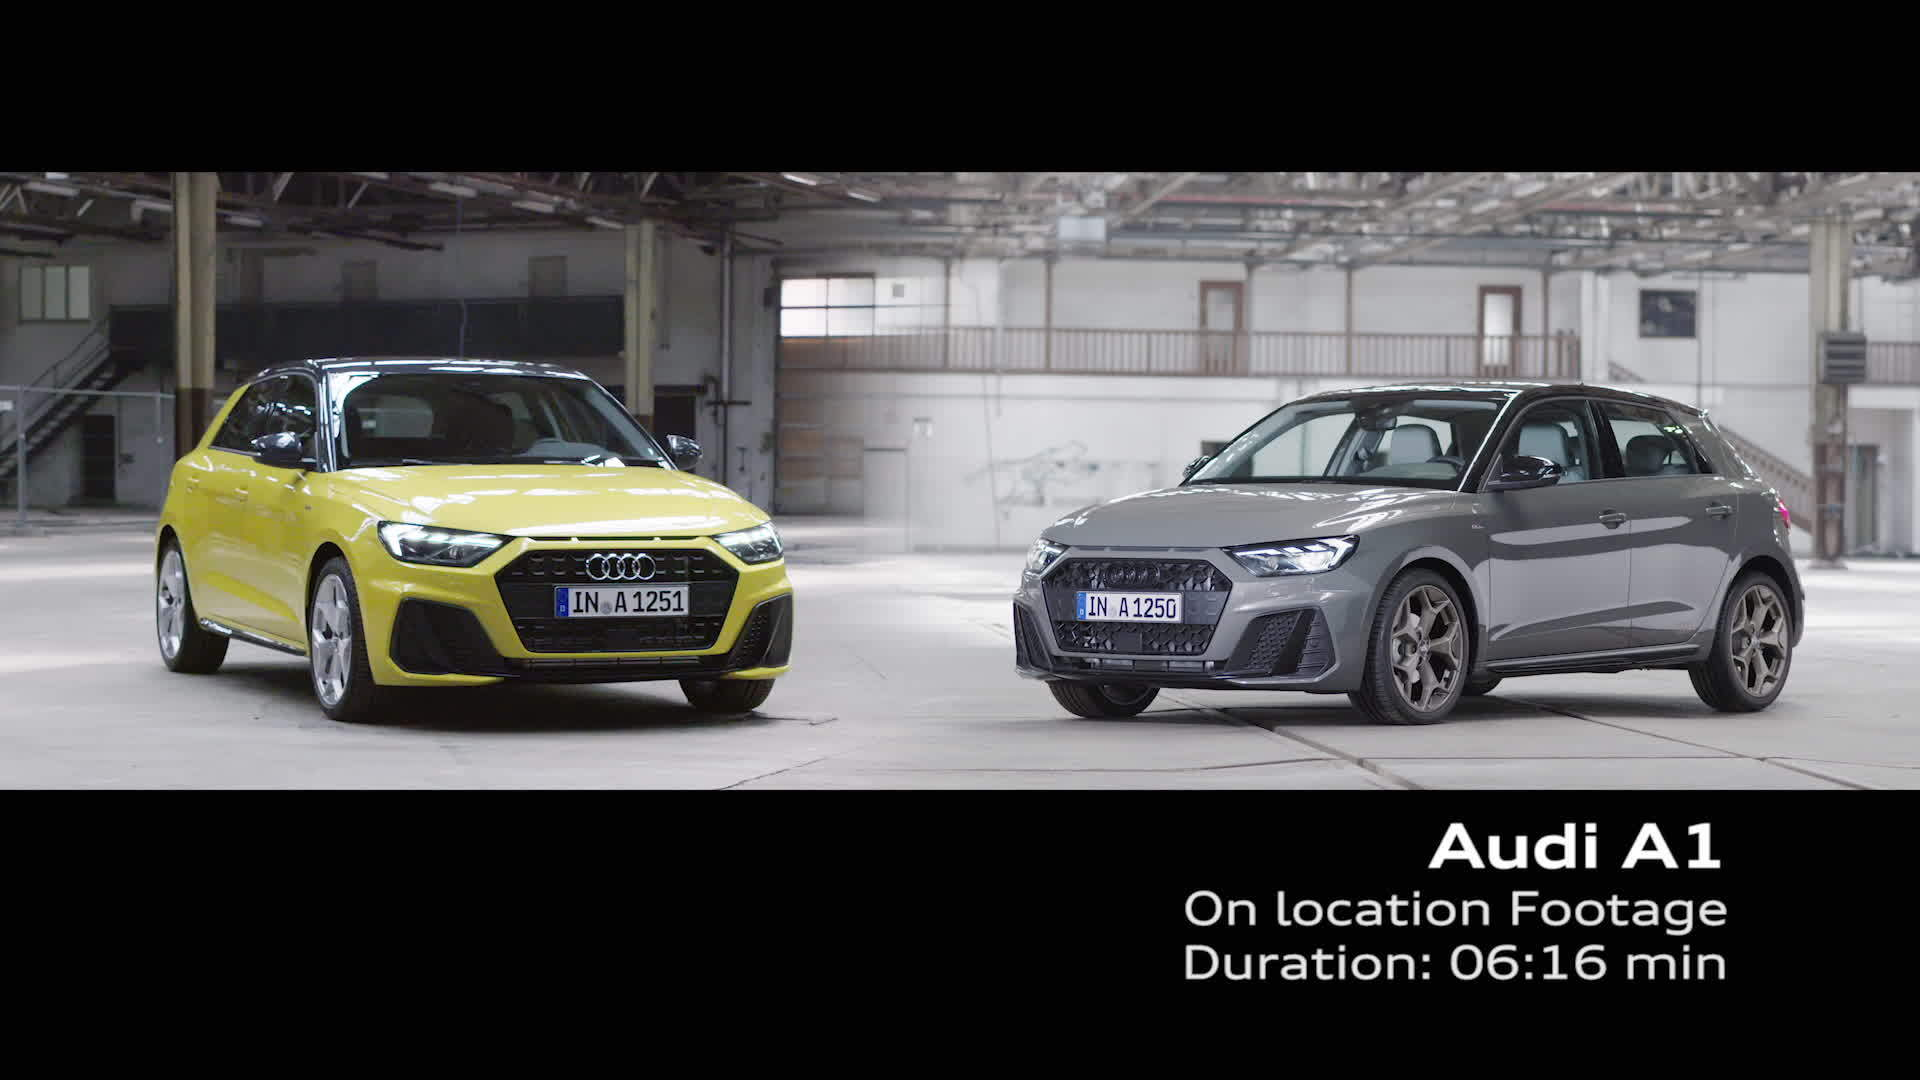 Audi A1 Sportback - On location Footage